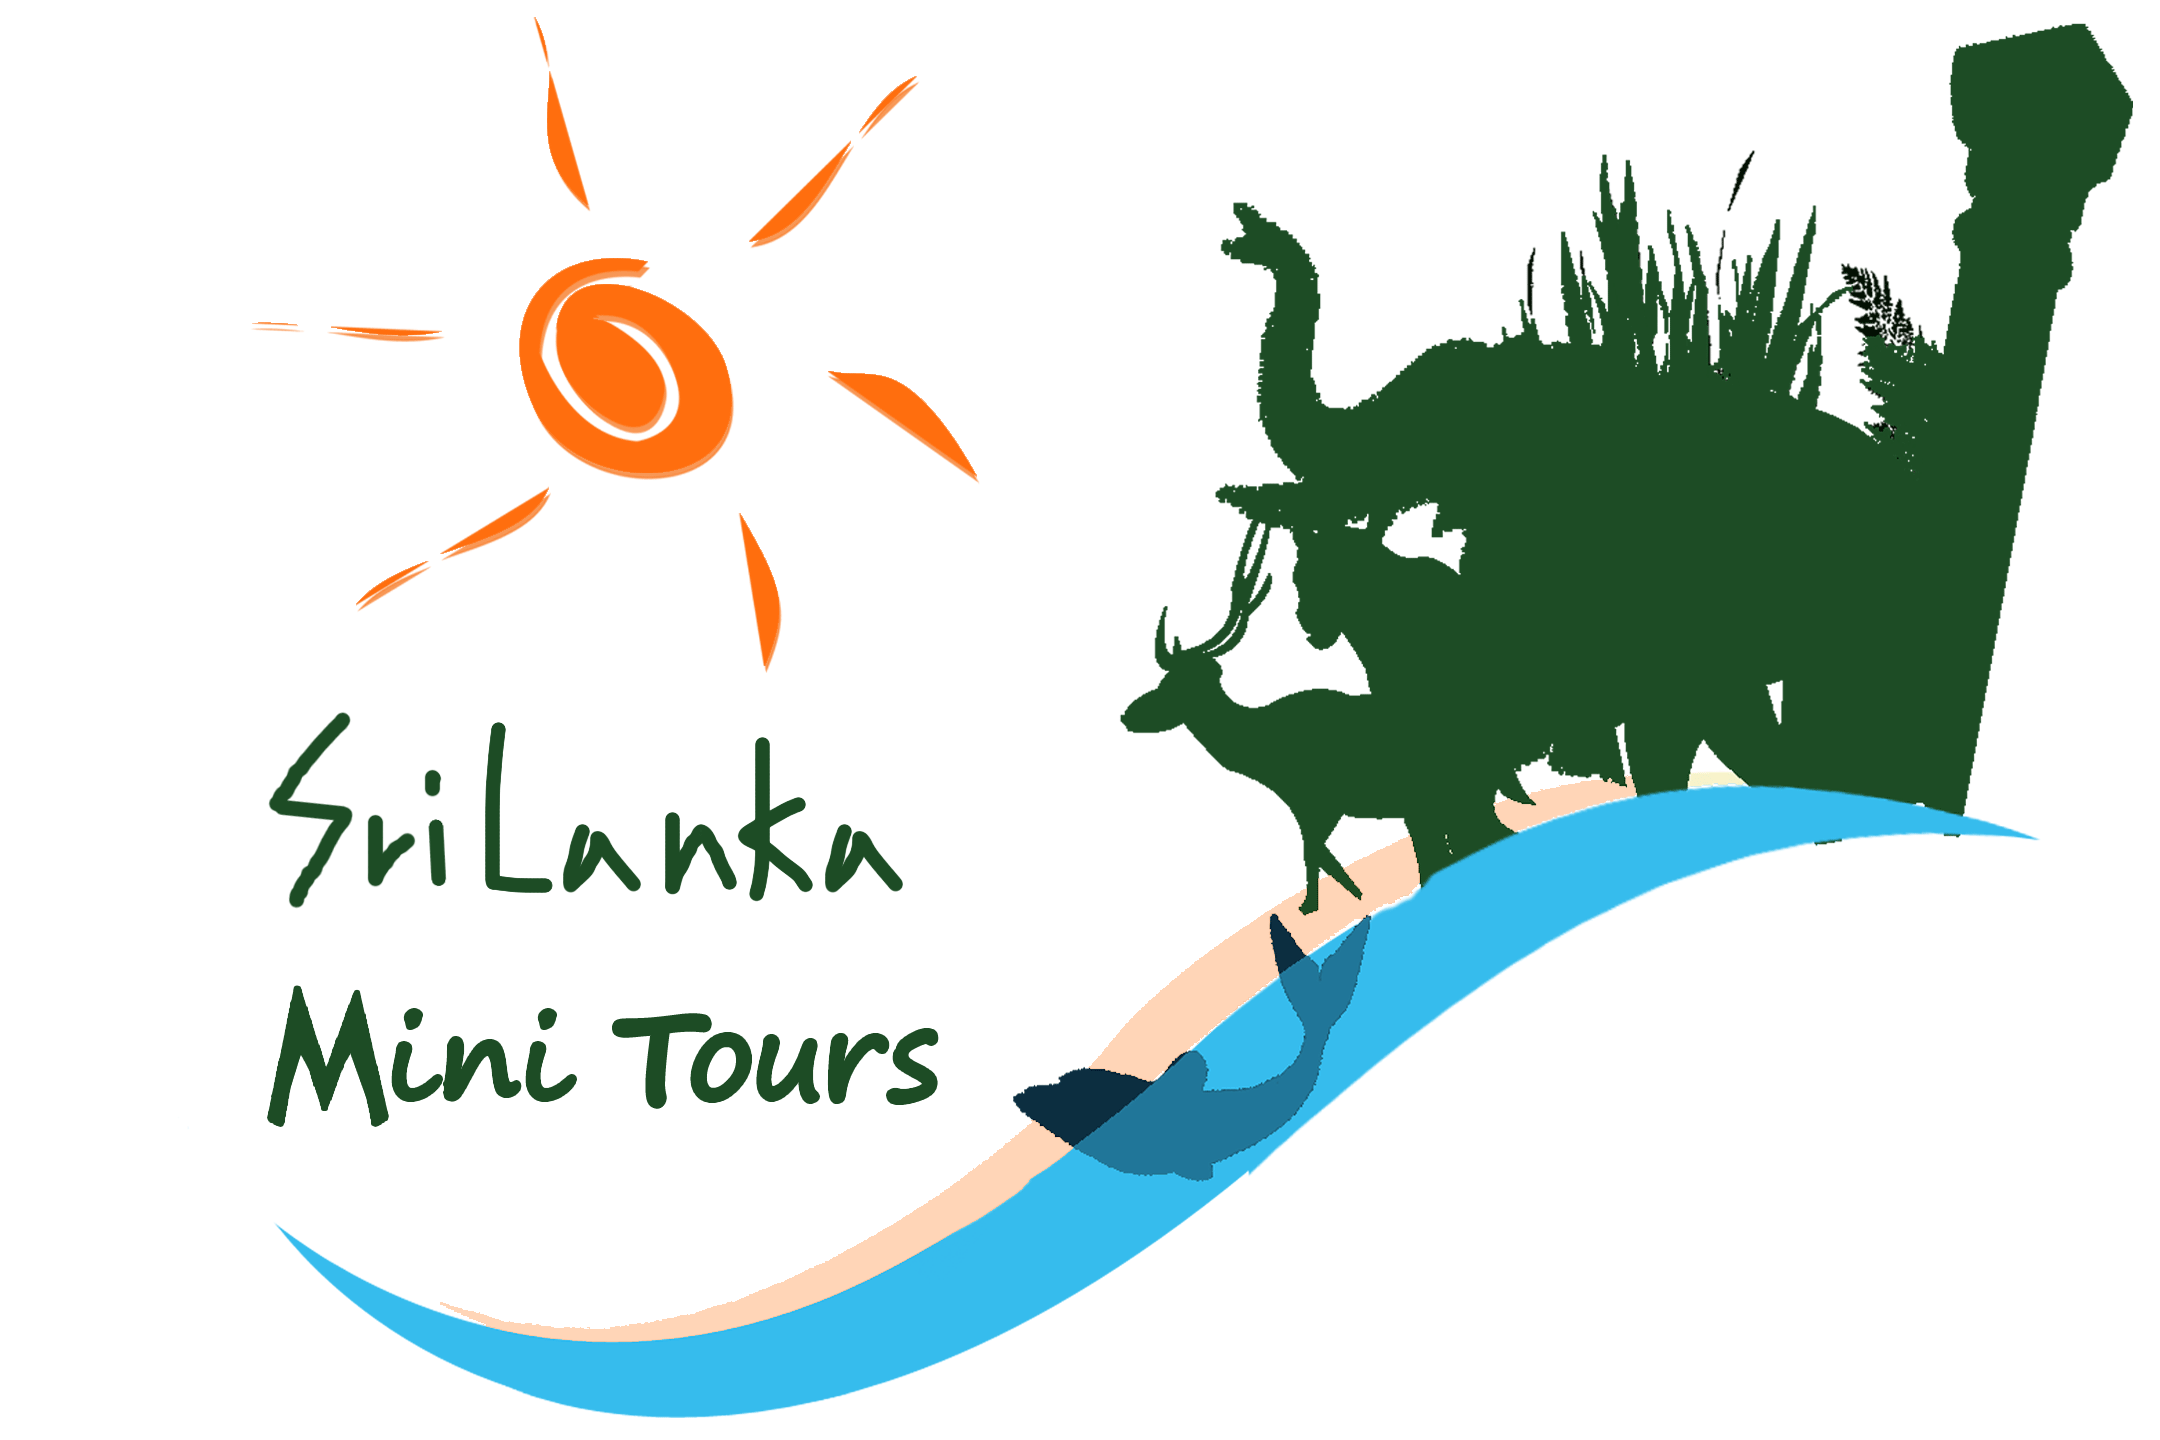 Rajanganaya Agro Tour|Rajanganaya Day Tours |Ipanalla Agro Tour in Sri Lanka | Day Tour in Sri Lanka |Day Excursion in Sri Lanka|Sri Lanka Mini Tours